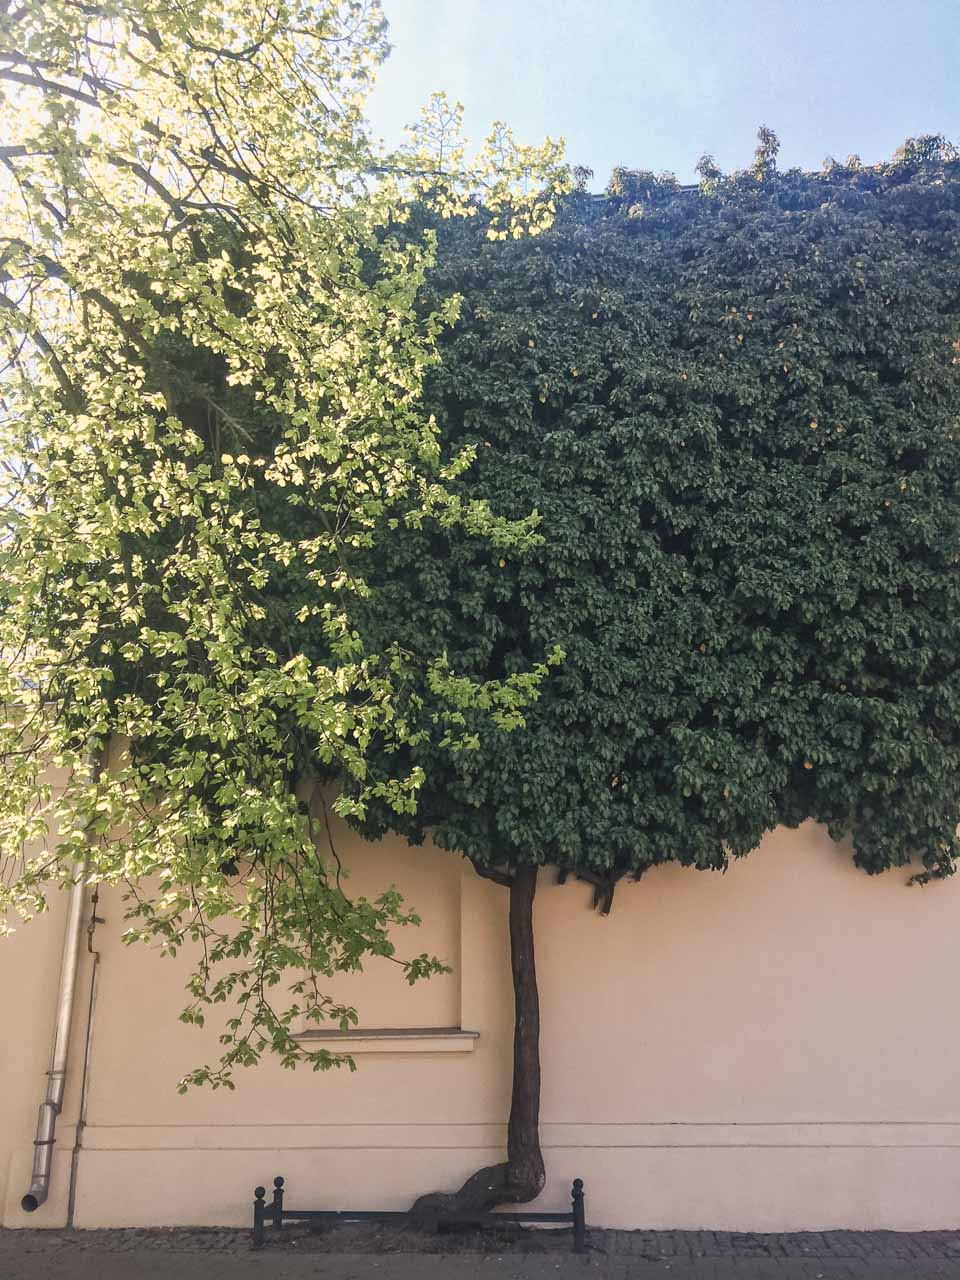 A tree growing against a wall